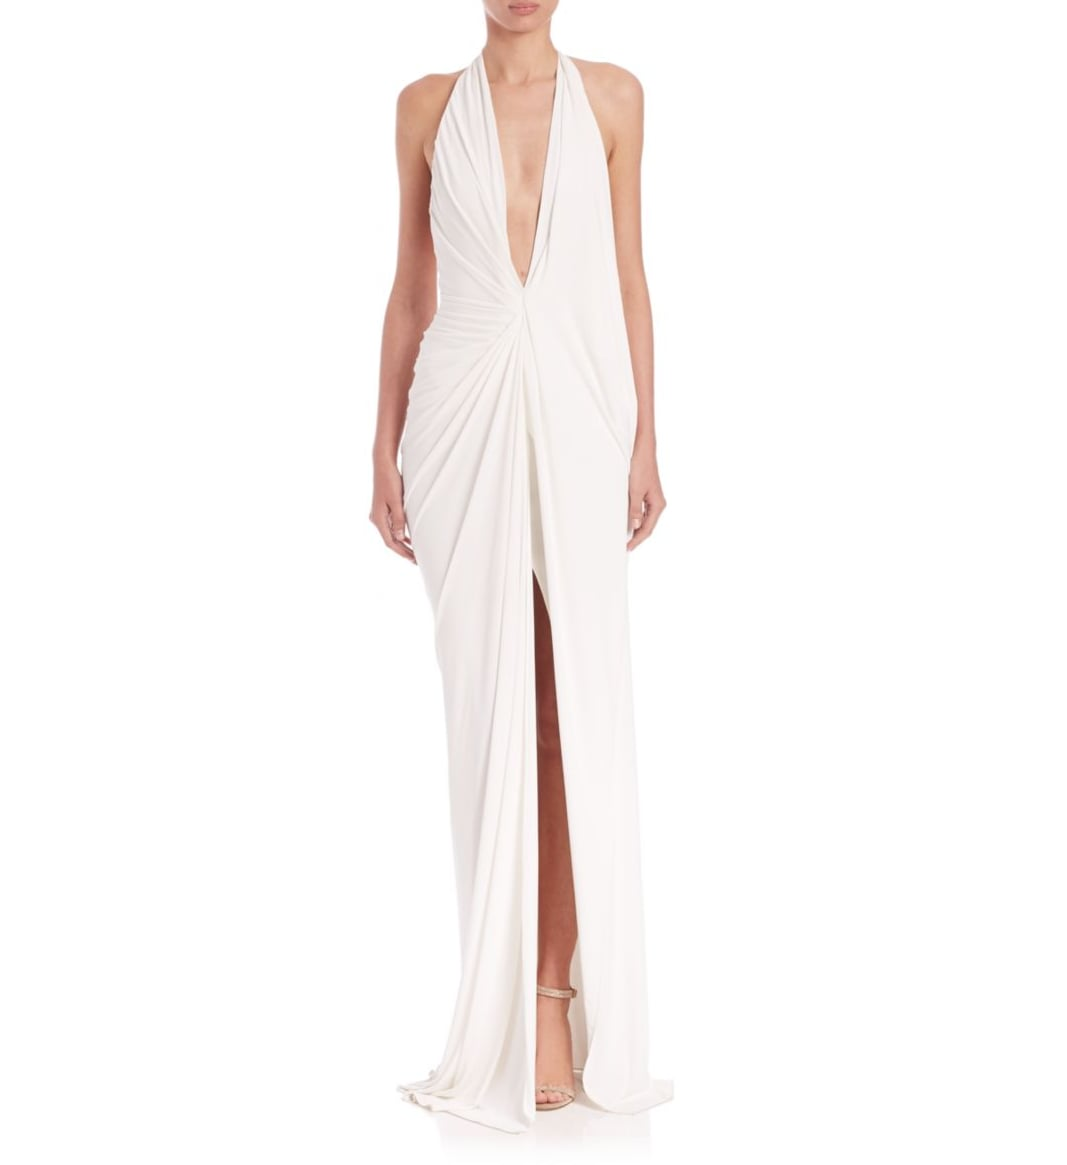 Donna karan jersey halter gown 3 495 20 of the best for Donna karan wedding dresses